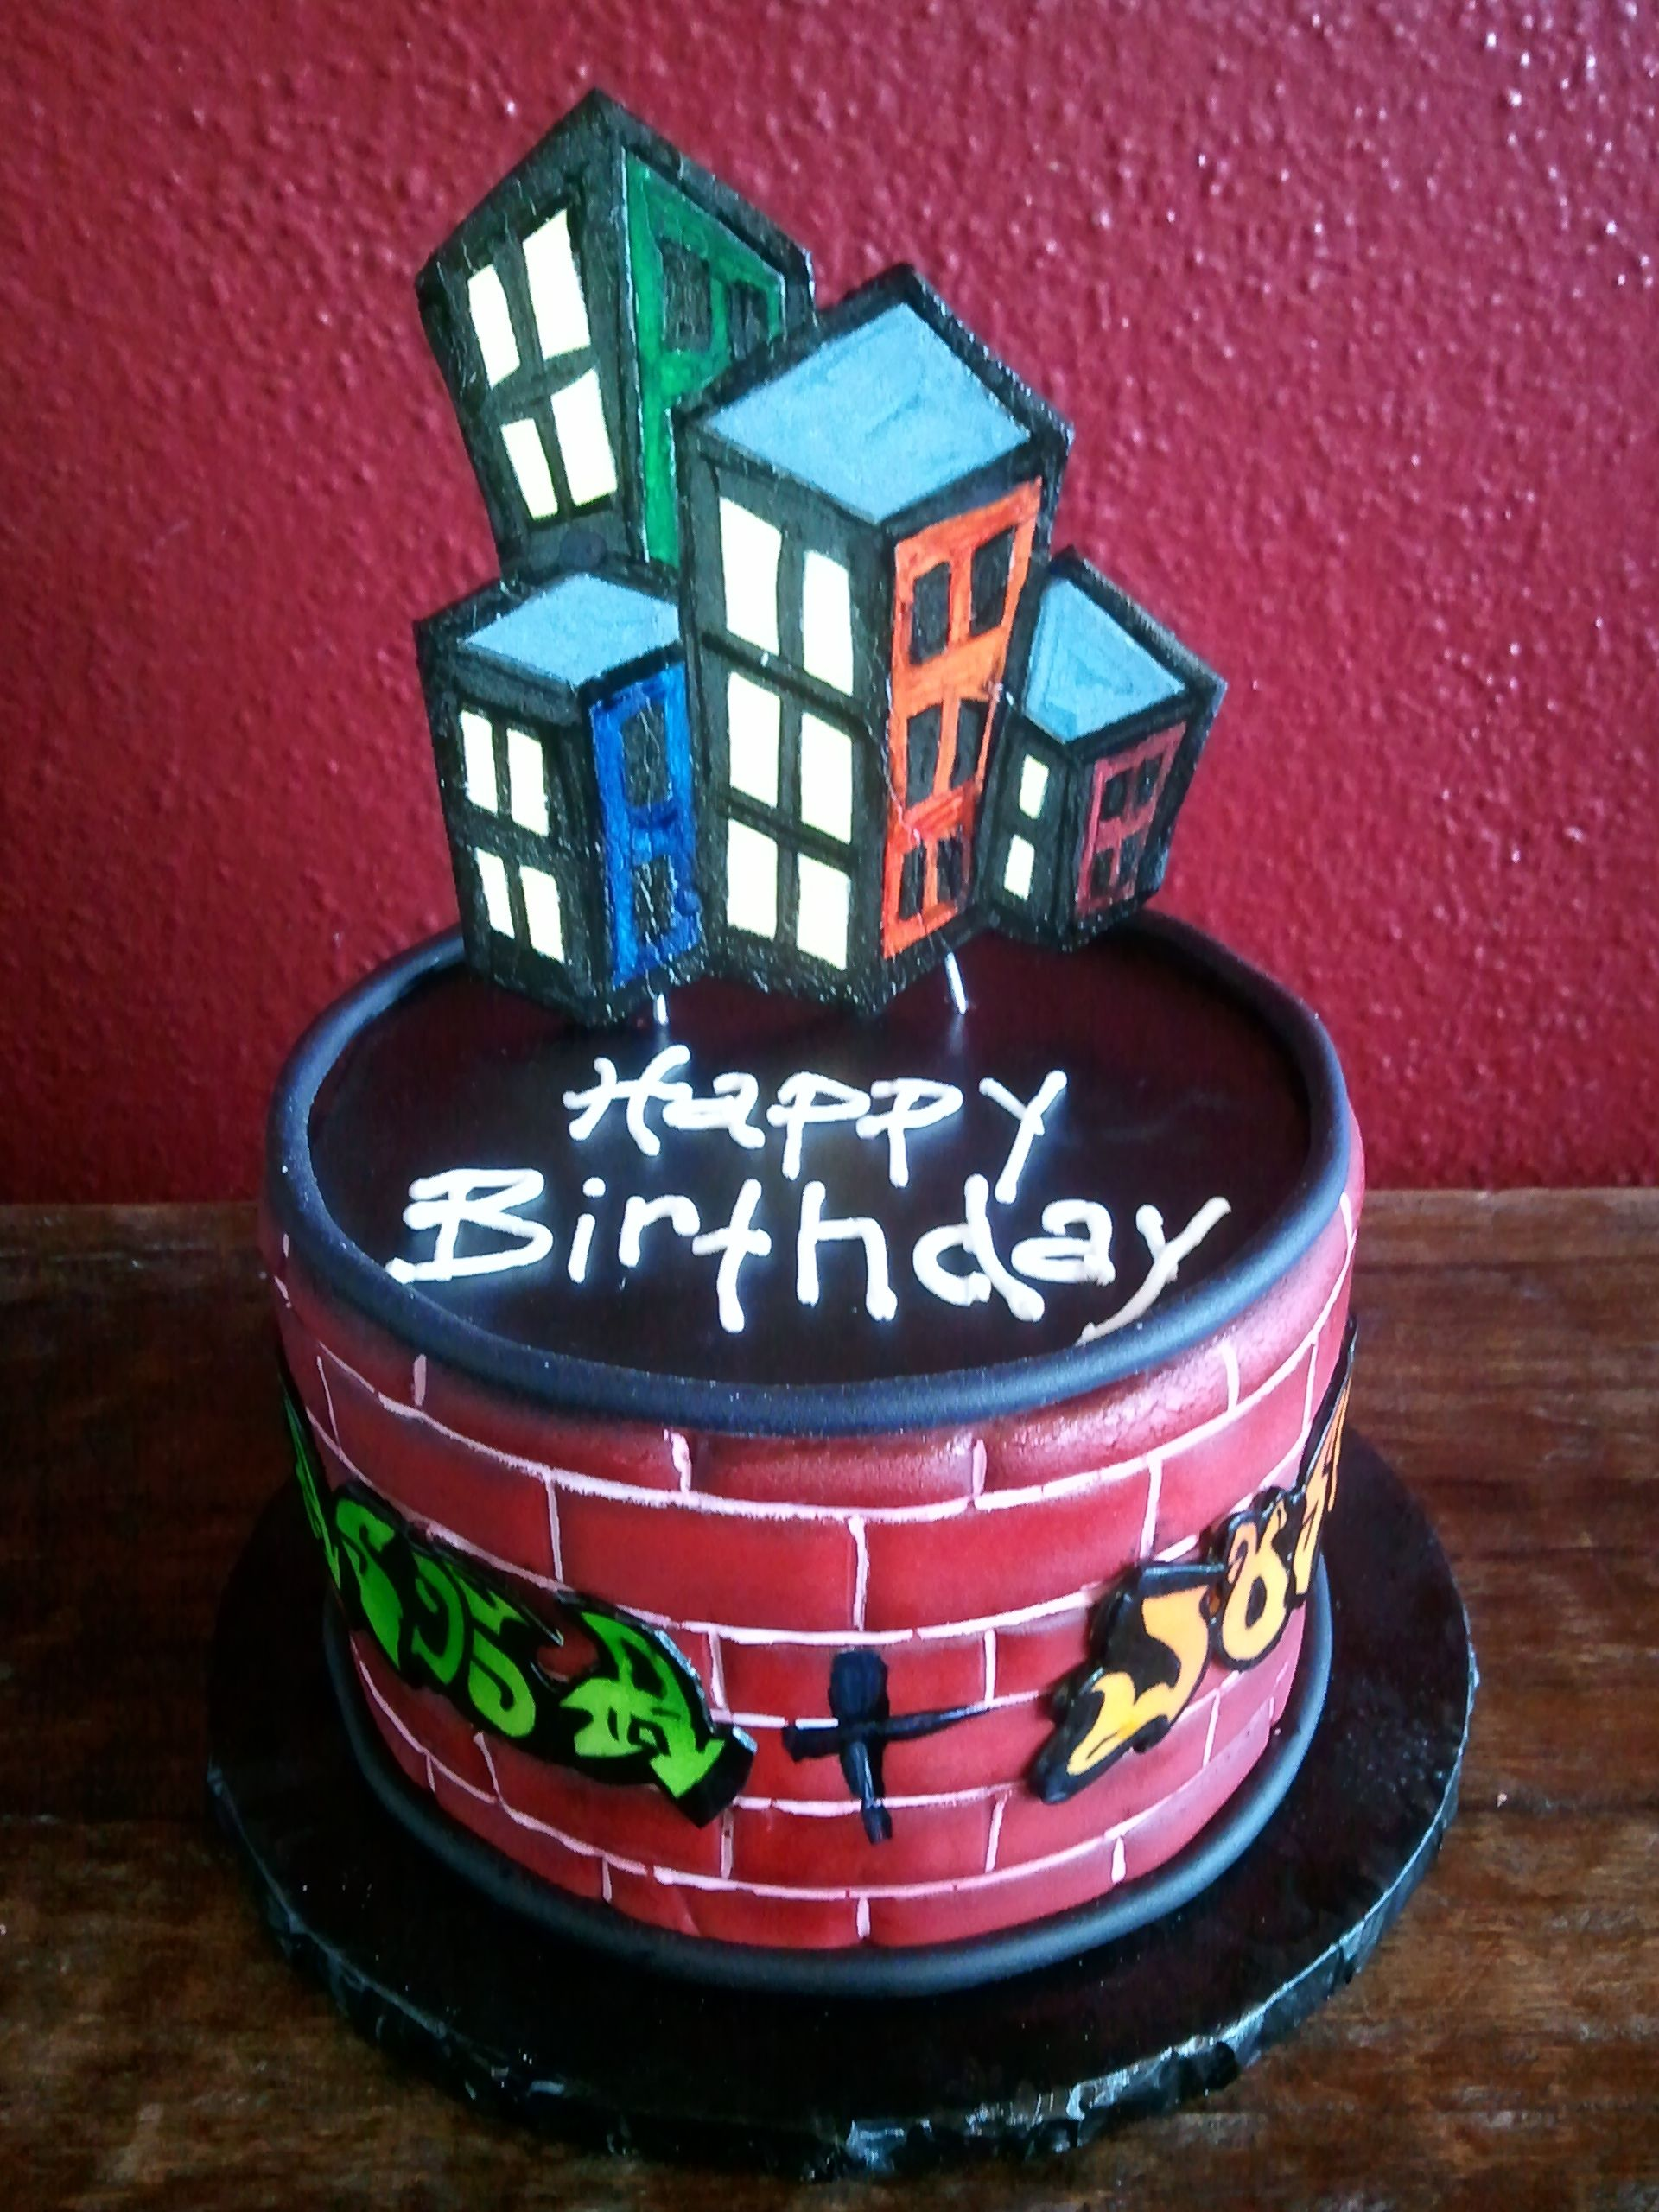 Graffiti Birthday Cake | Birthday Cakes | Pinterest | Graffiti ...